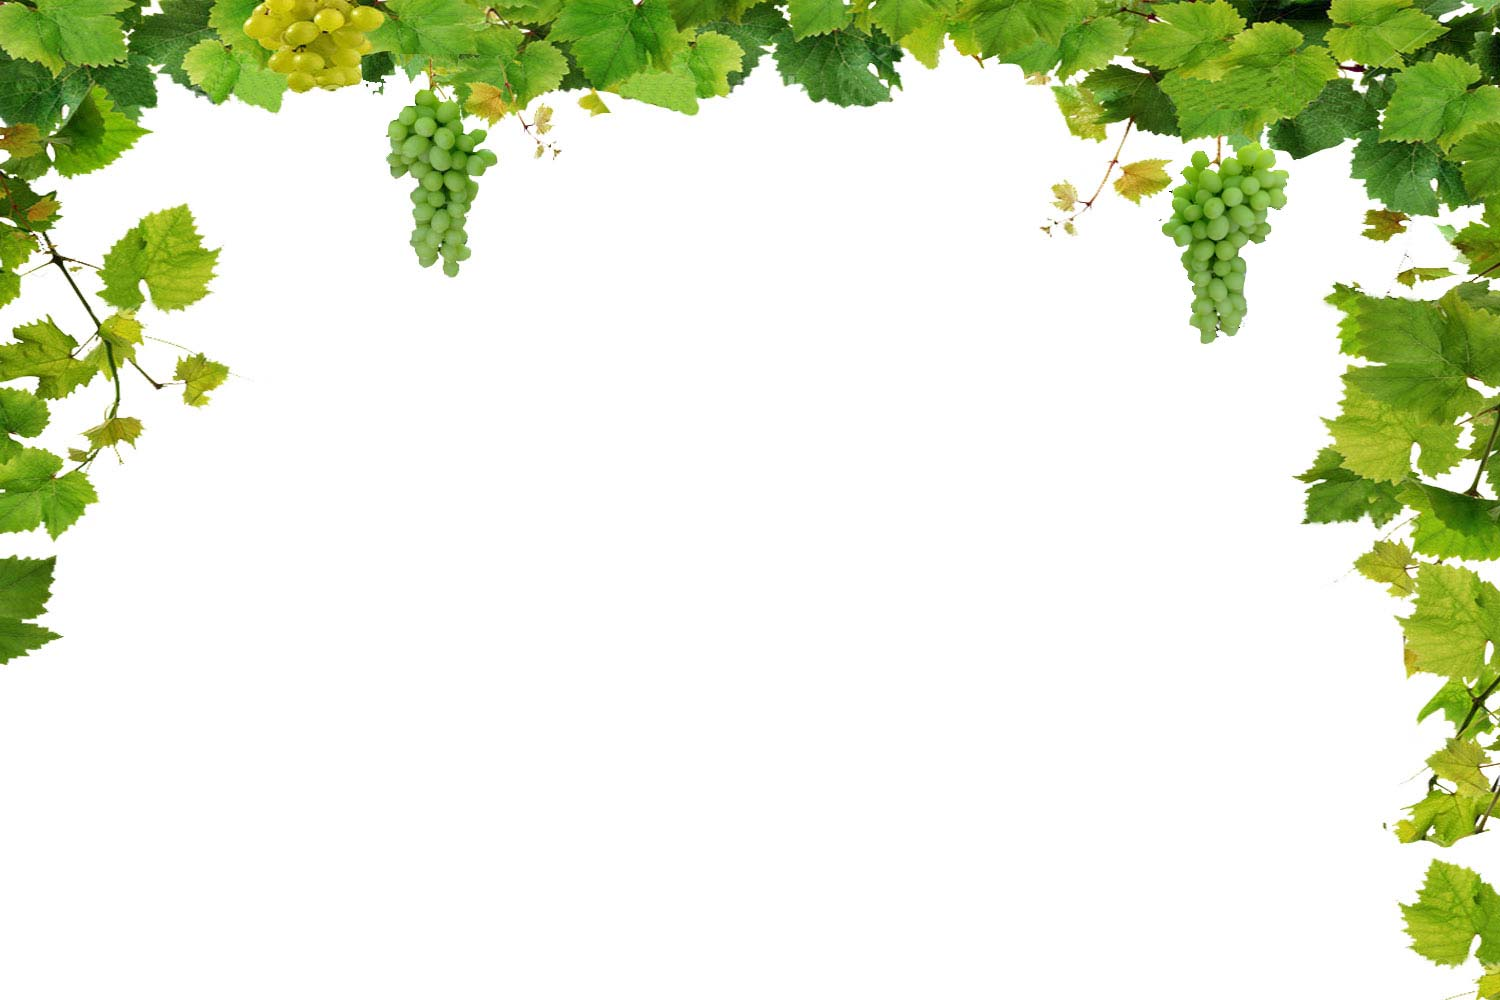 Wine Png Borders - 1500x1000px Wine and Grapes Wallpaper Border - WallpaperSafari